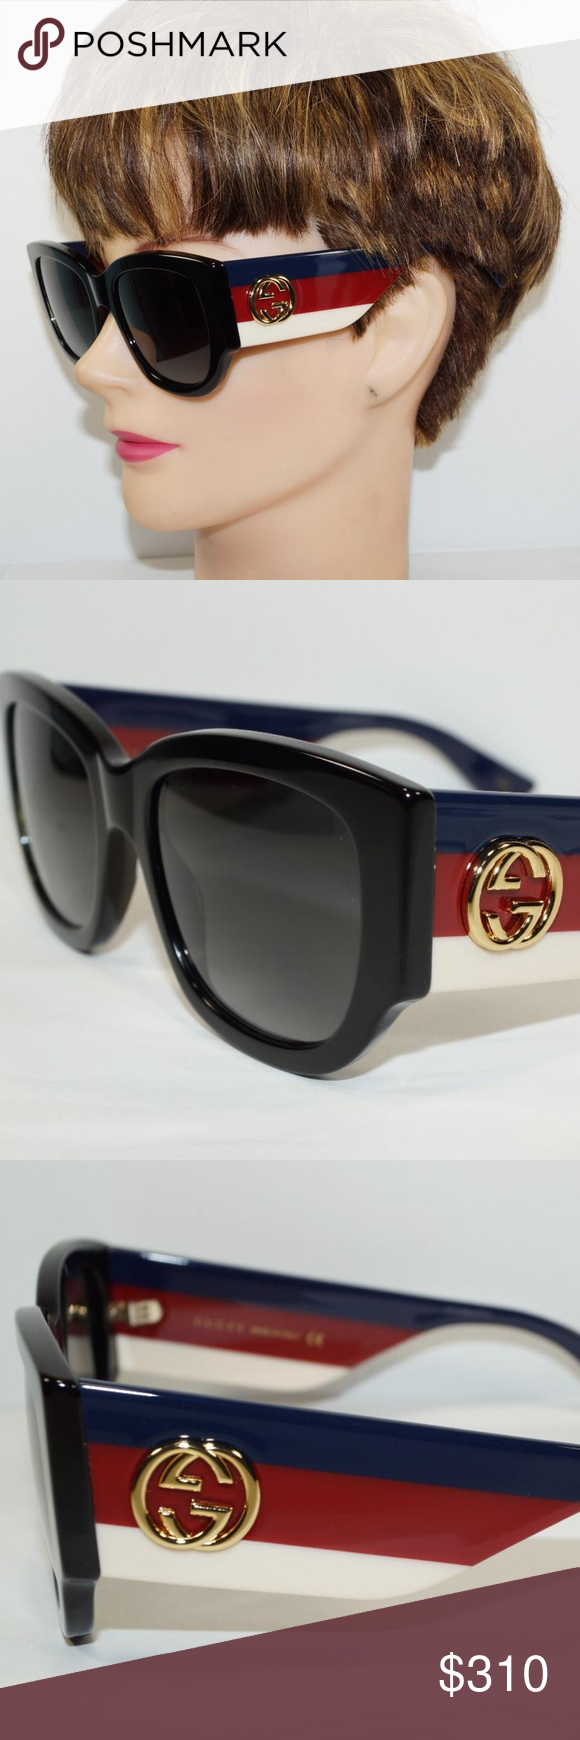 a70ef907ee0 GUCCI CAT EYE BLACK BLUE RED STRIPE SUNGLASSES Brand New 100% Authentic  GUCCI OVERSIZE CAT